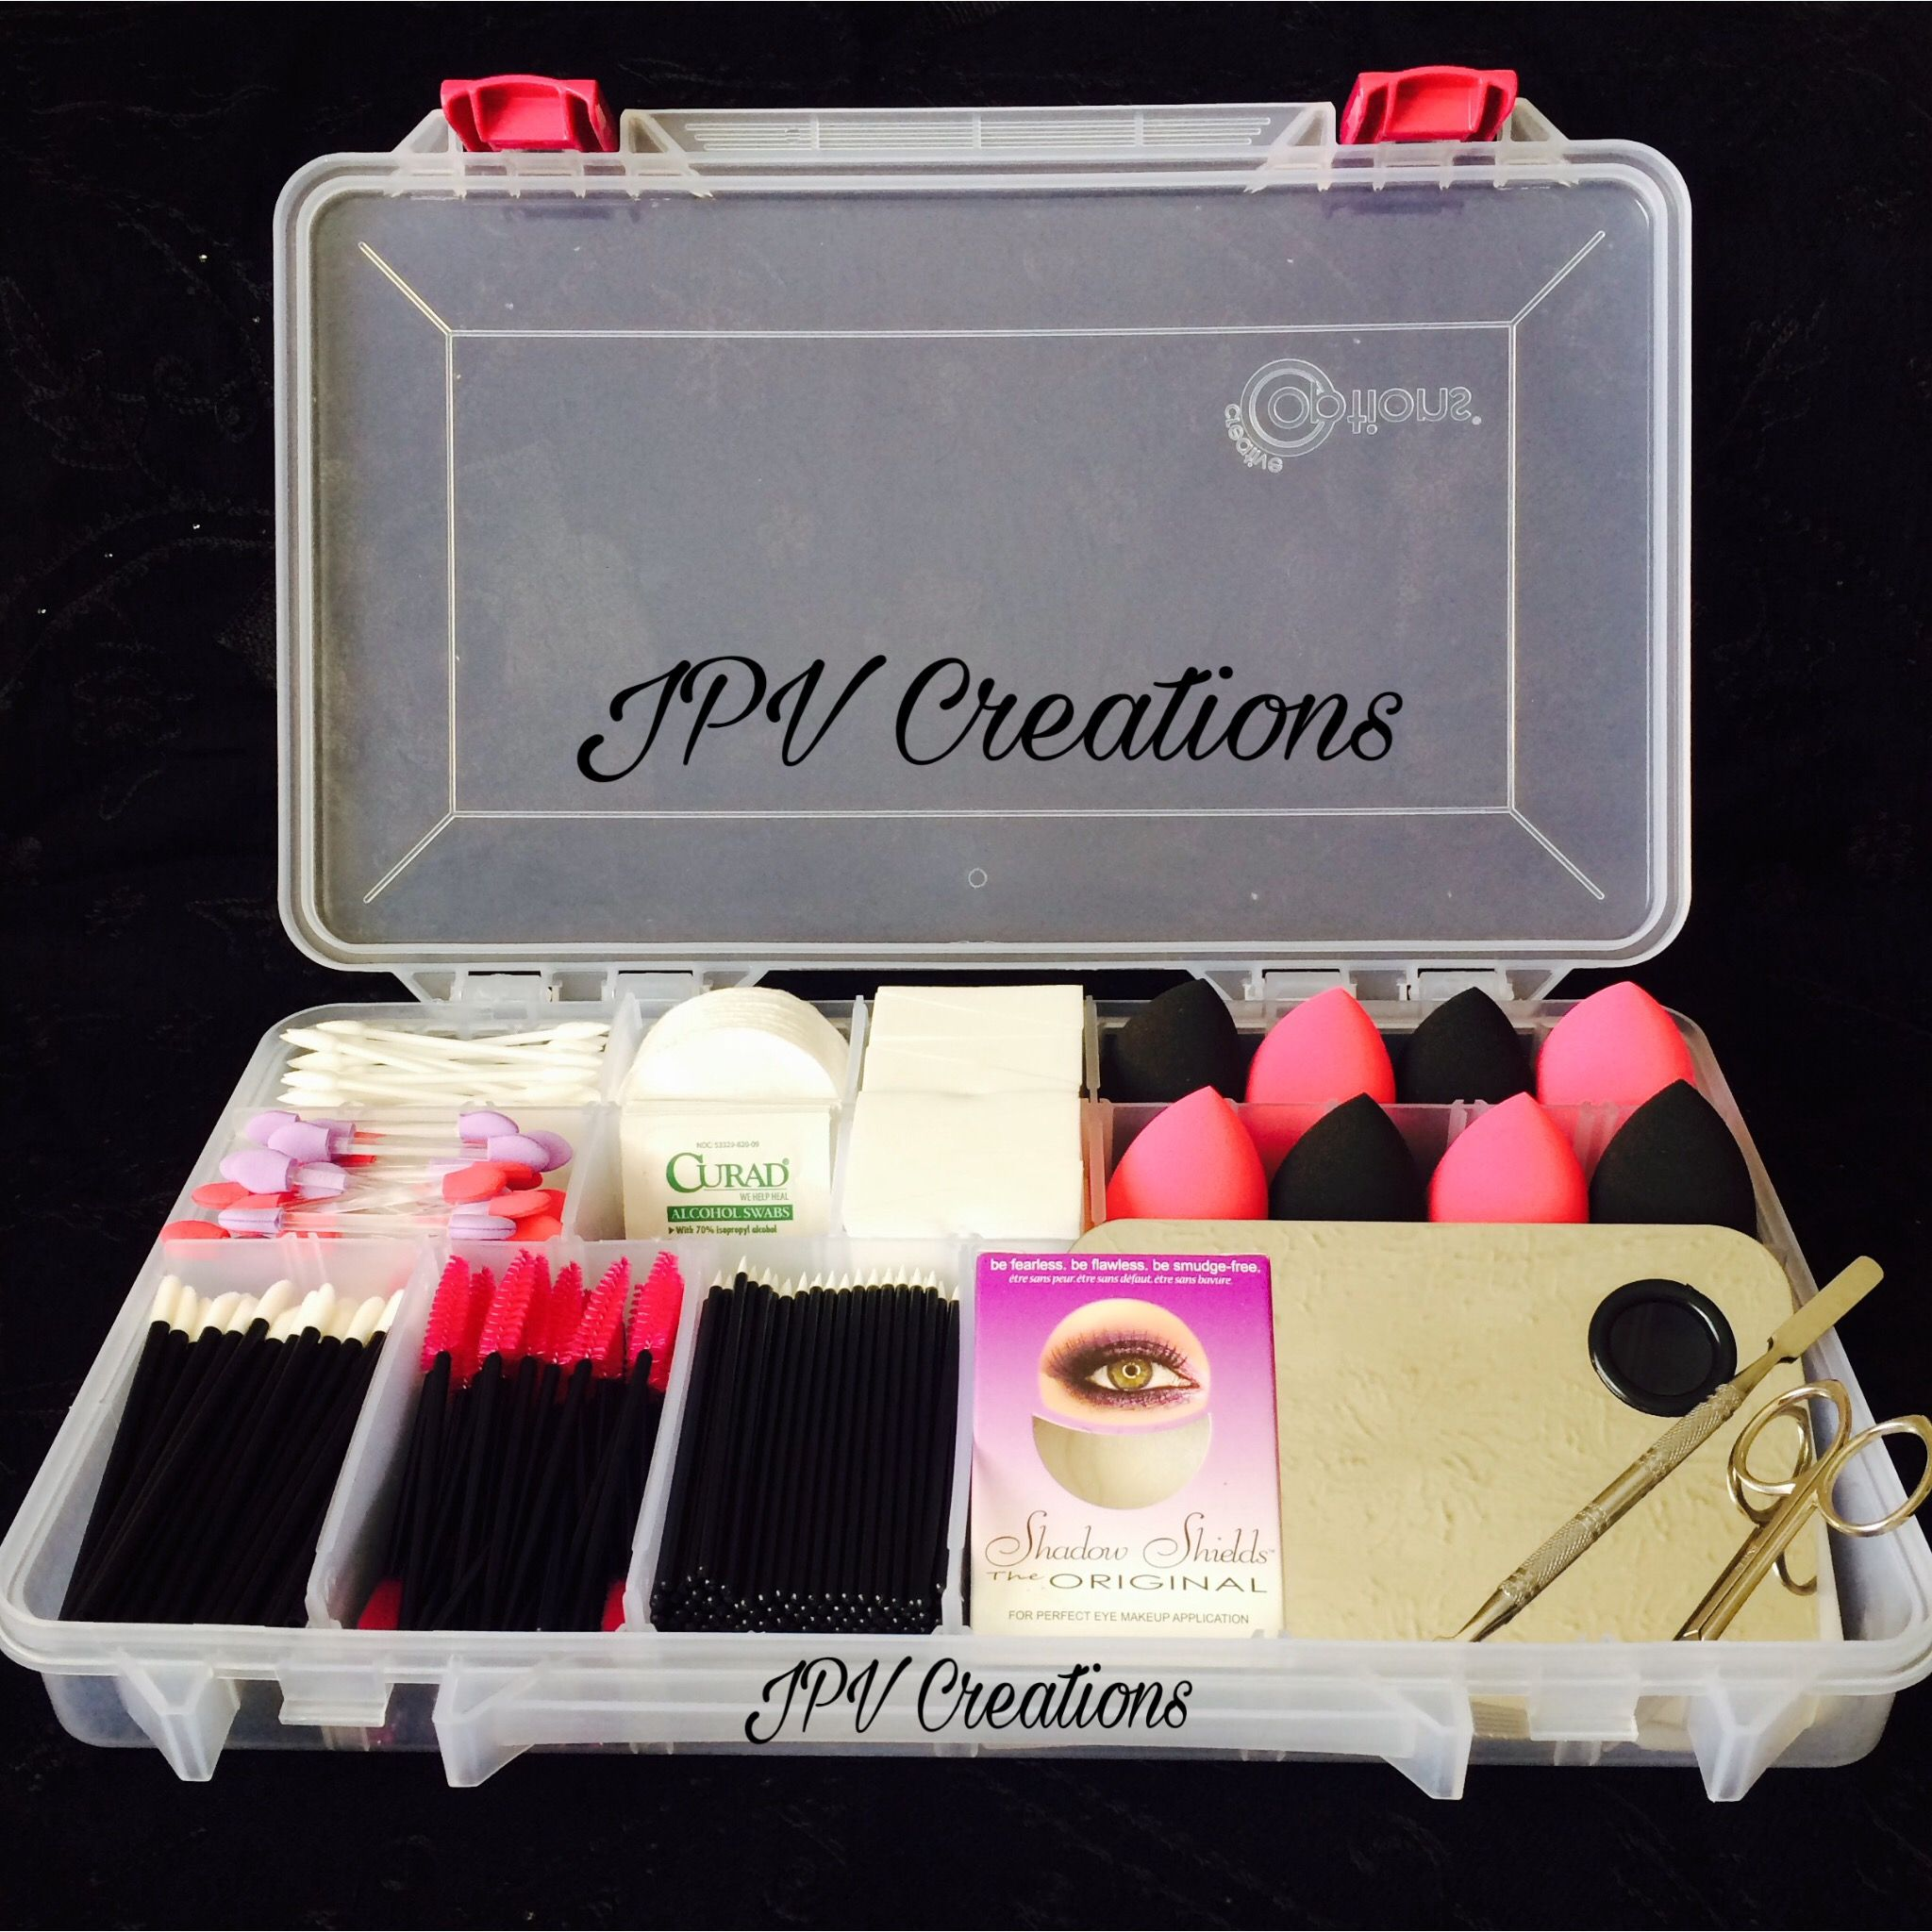 Disposable Makeup Applicators Kit Organized By Pv #Disposablemakeupapplicatorskit #Makeupkit #Makeup